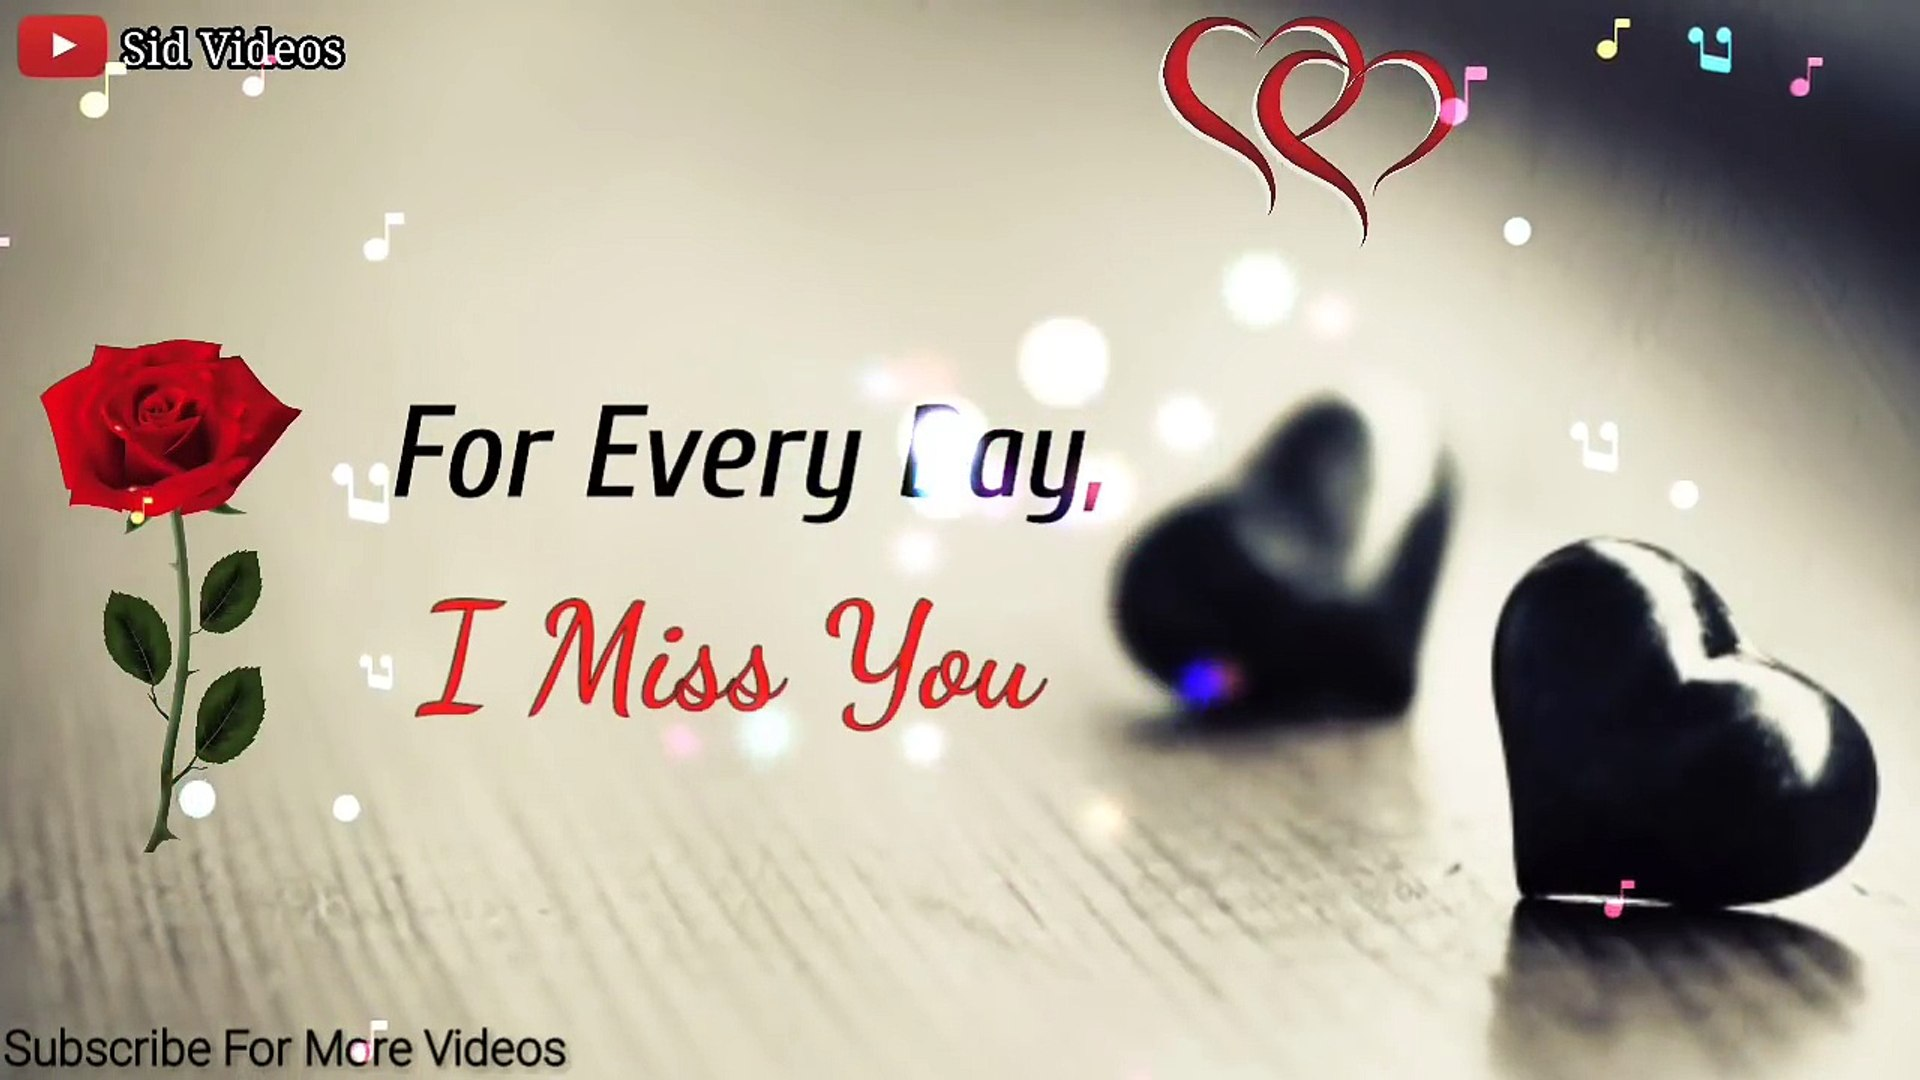 I Love You Whatsapp Status Video 2018 Whatsapp Sad Video Whatsapp Sad Song Whatsapp Sad Status In Hindi Whatsapp Sad Love Story Whatsapp Sad Dp Whatsapp Sad Chat Whatsapp Sad Story